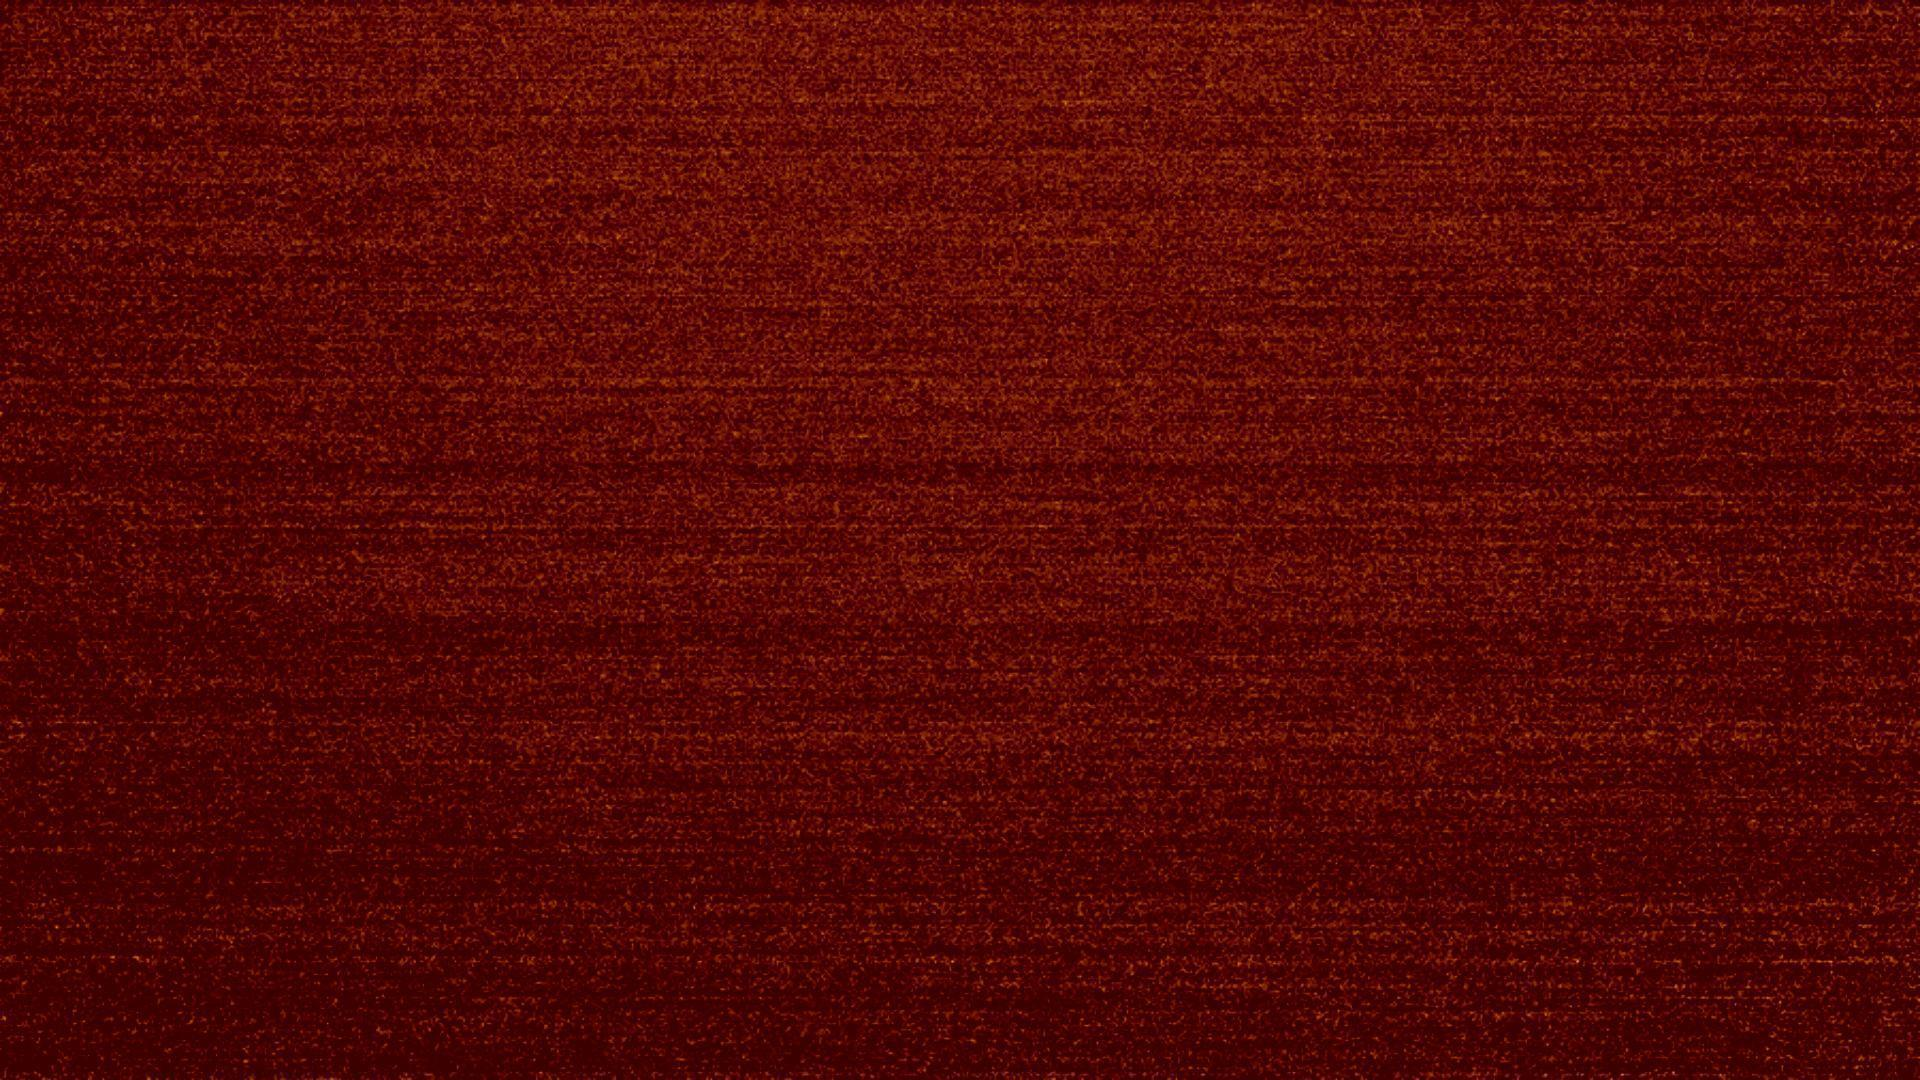 Deep Red Backgrounds 1920x1080